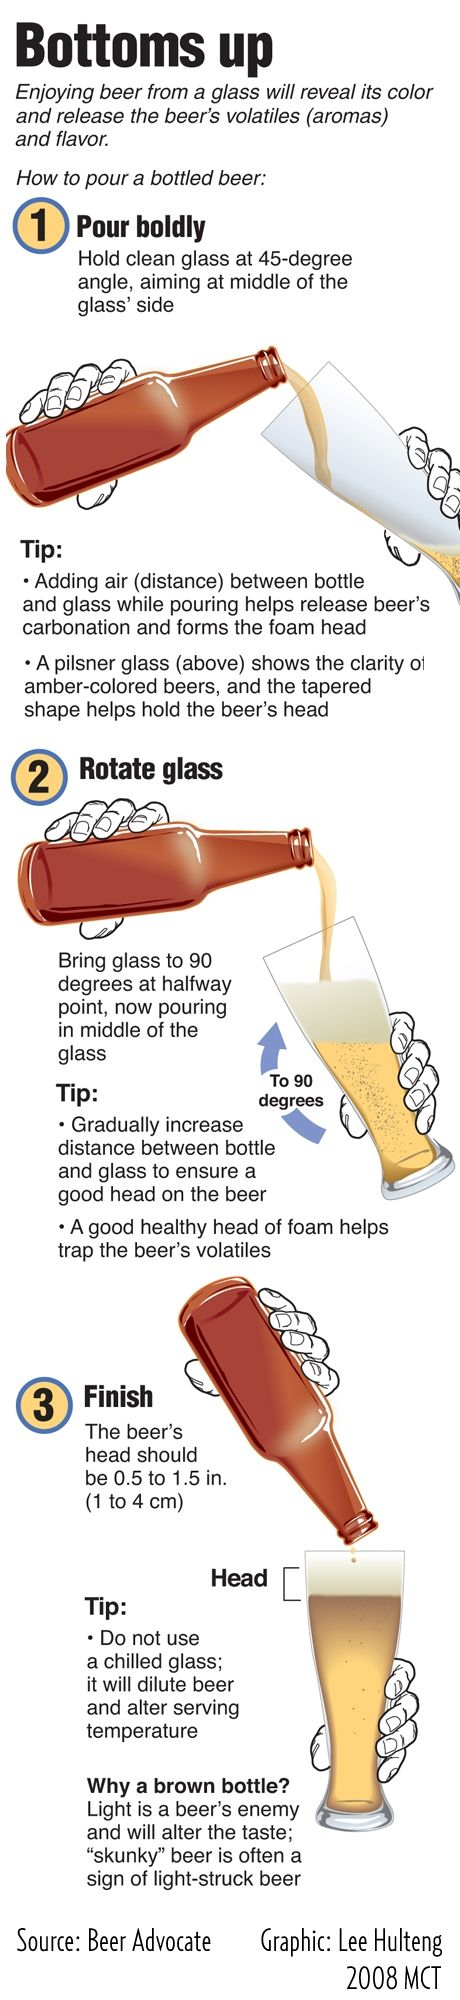 How to pour a beer like a pro!: Pour Beer, Glasses, Beer Beer, Beer Infographic, Bottle Beer, Crafts Beer, Enjoying Beer, Perfect Pour, Beer Drinks